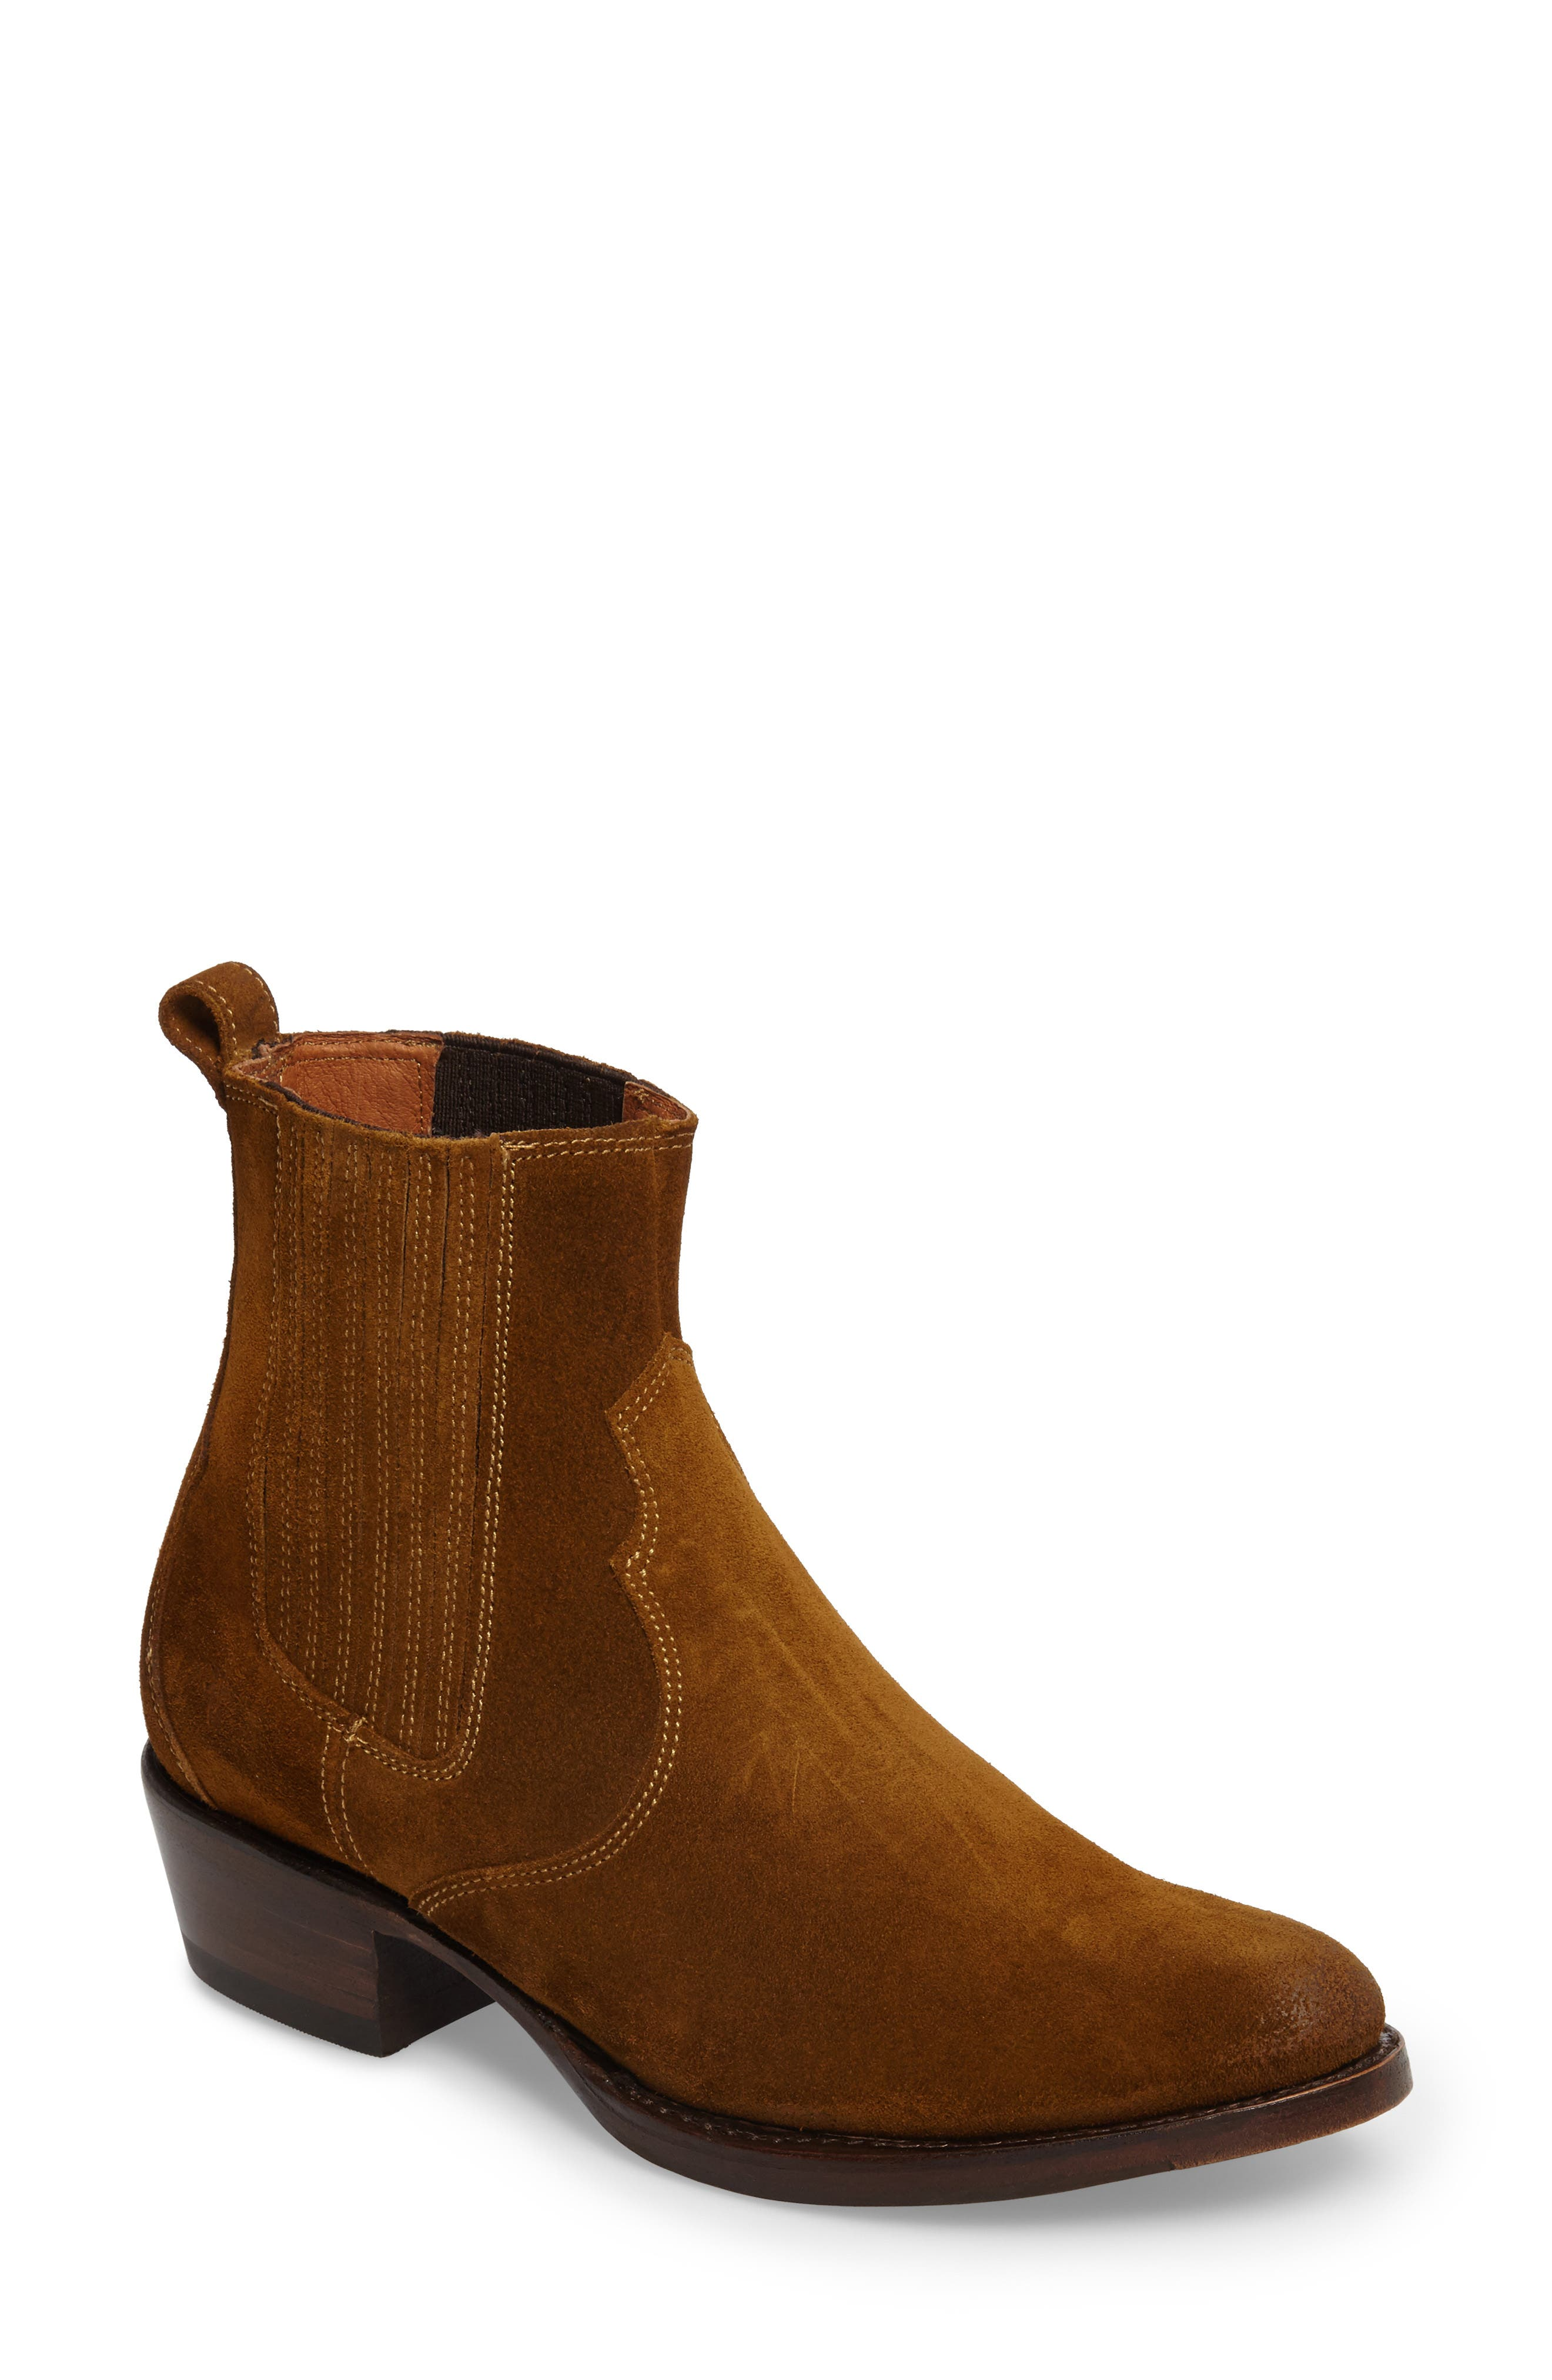 Alternate Image 1 Selected - Frye Diana Chelsea Boot (Women)